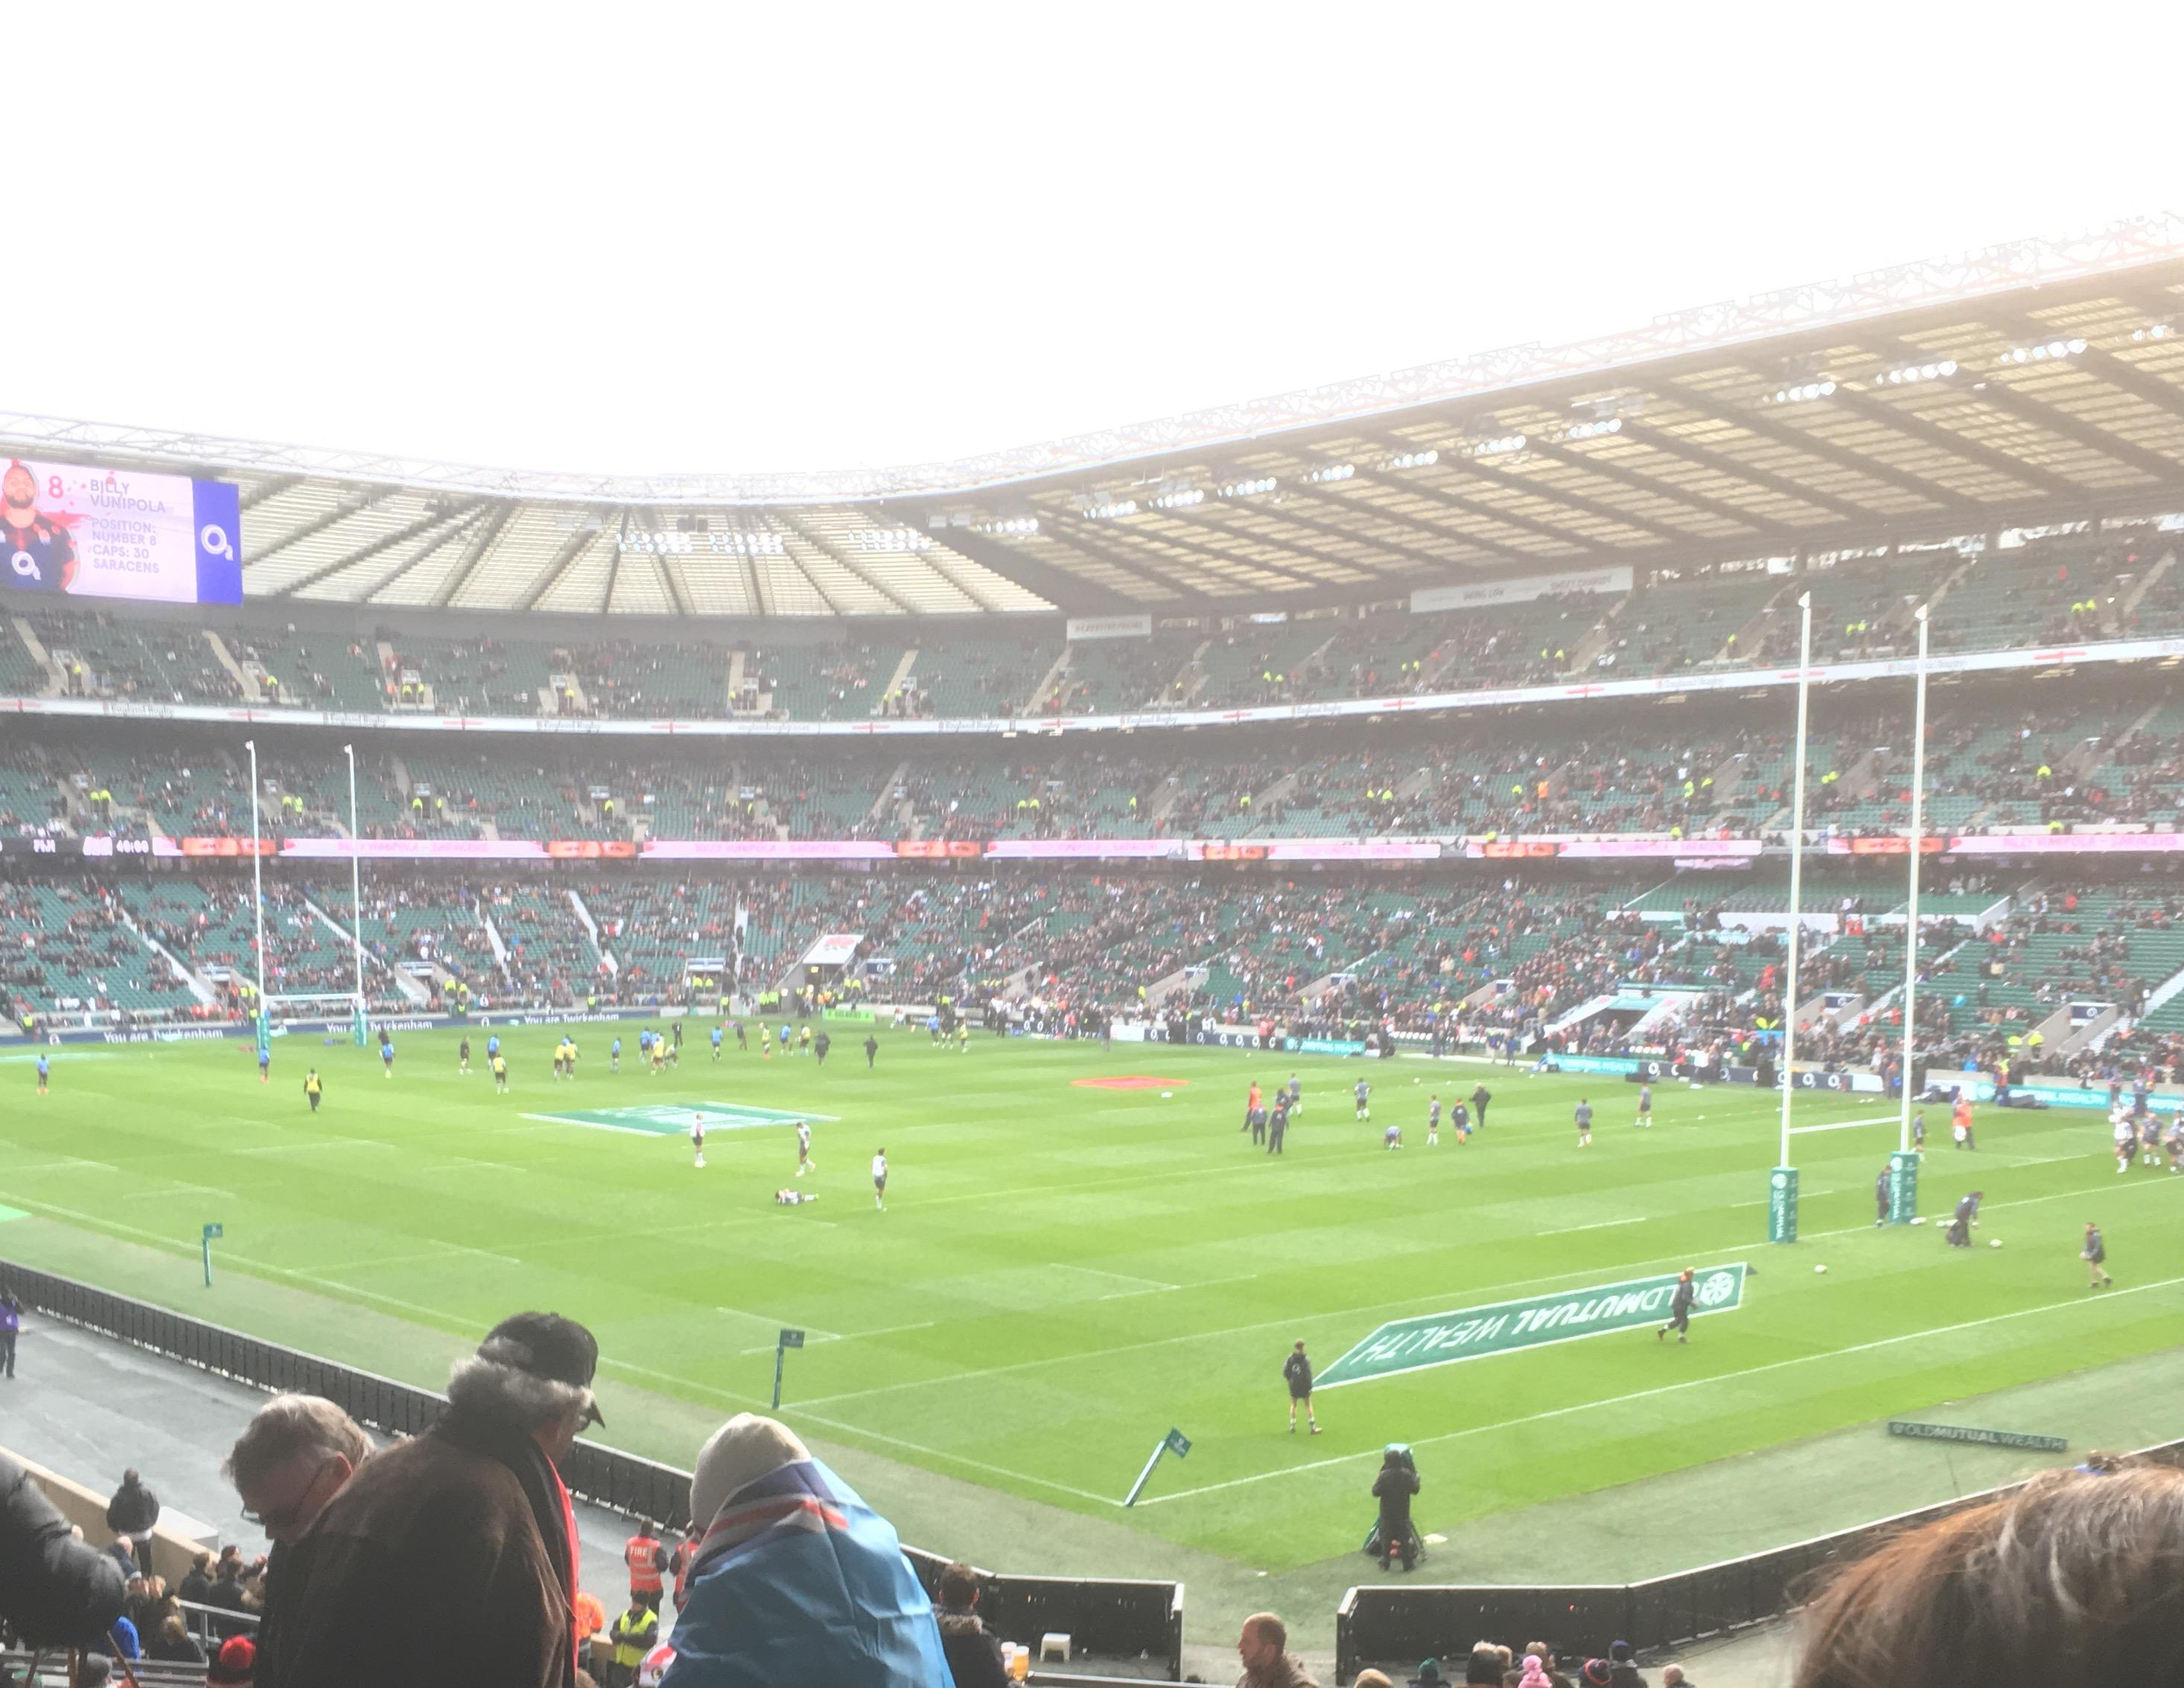 Twickenham Stadium Section L19 Row 38 Seat 10